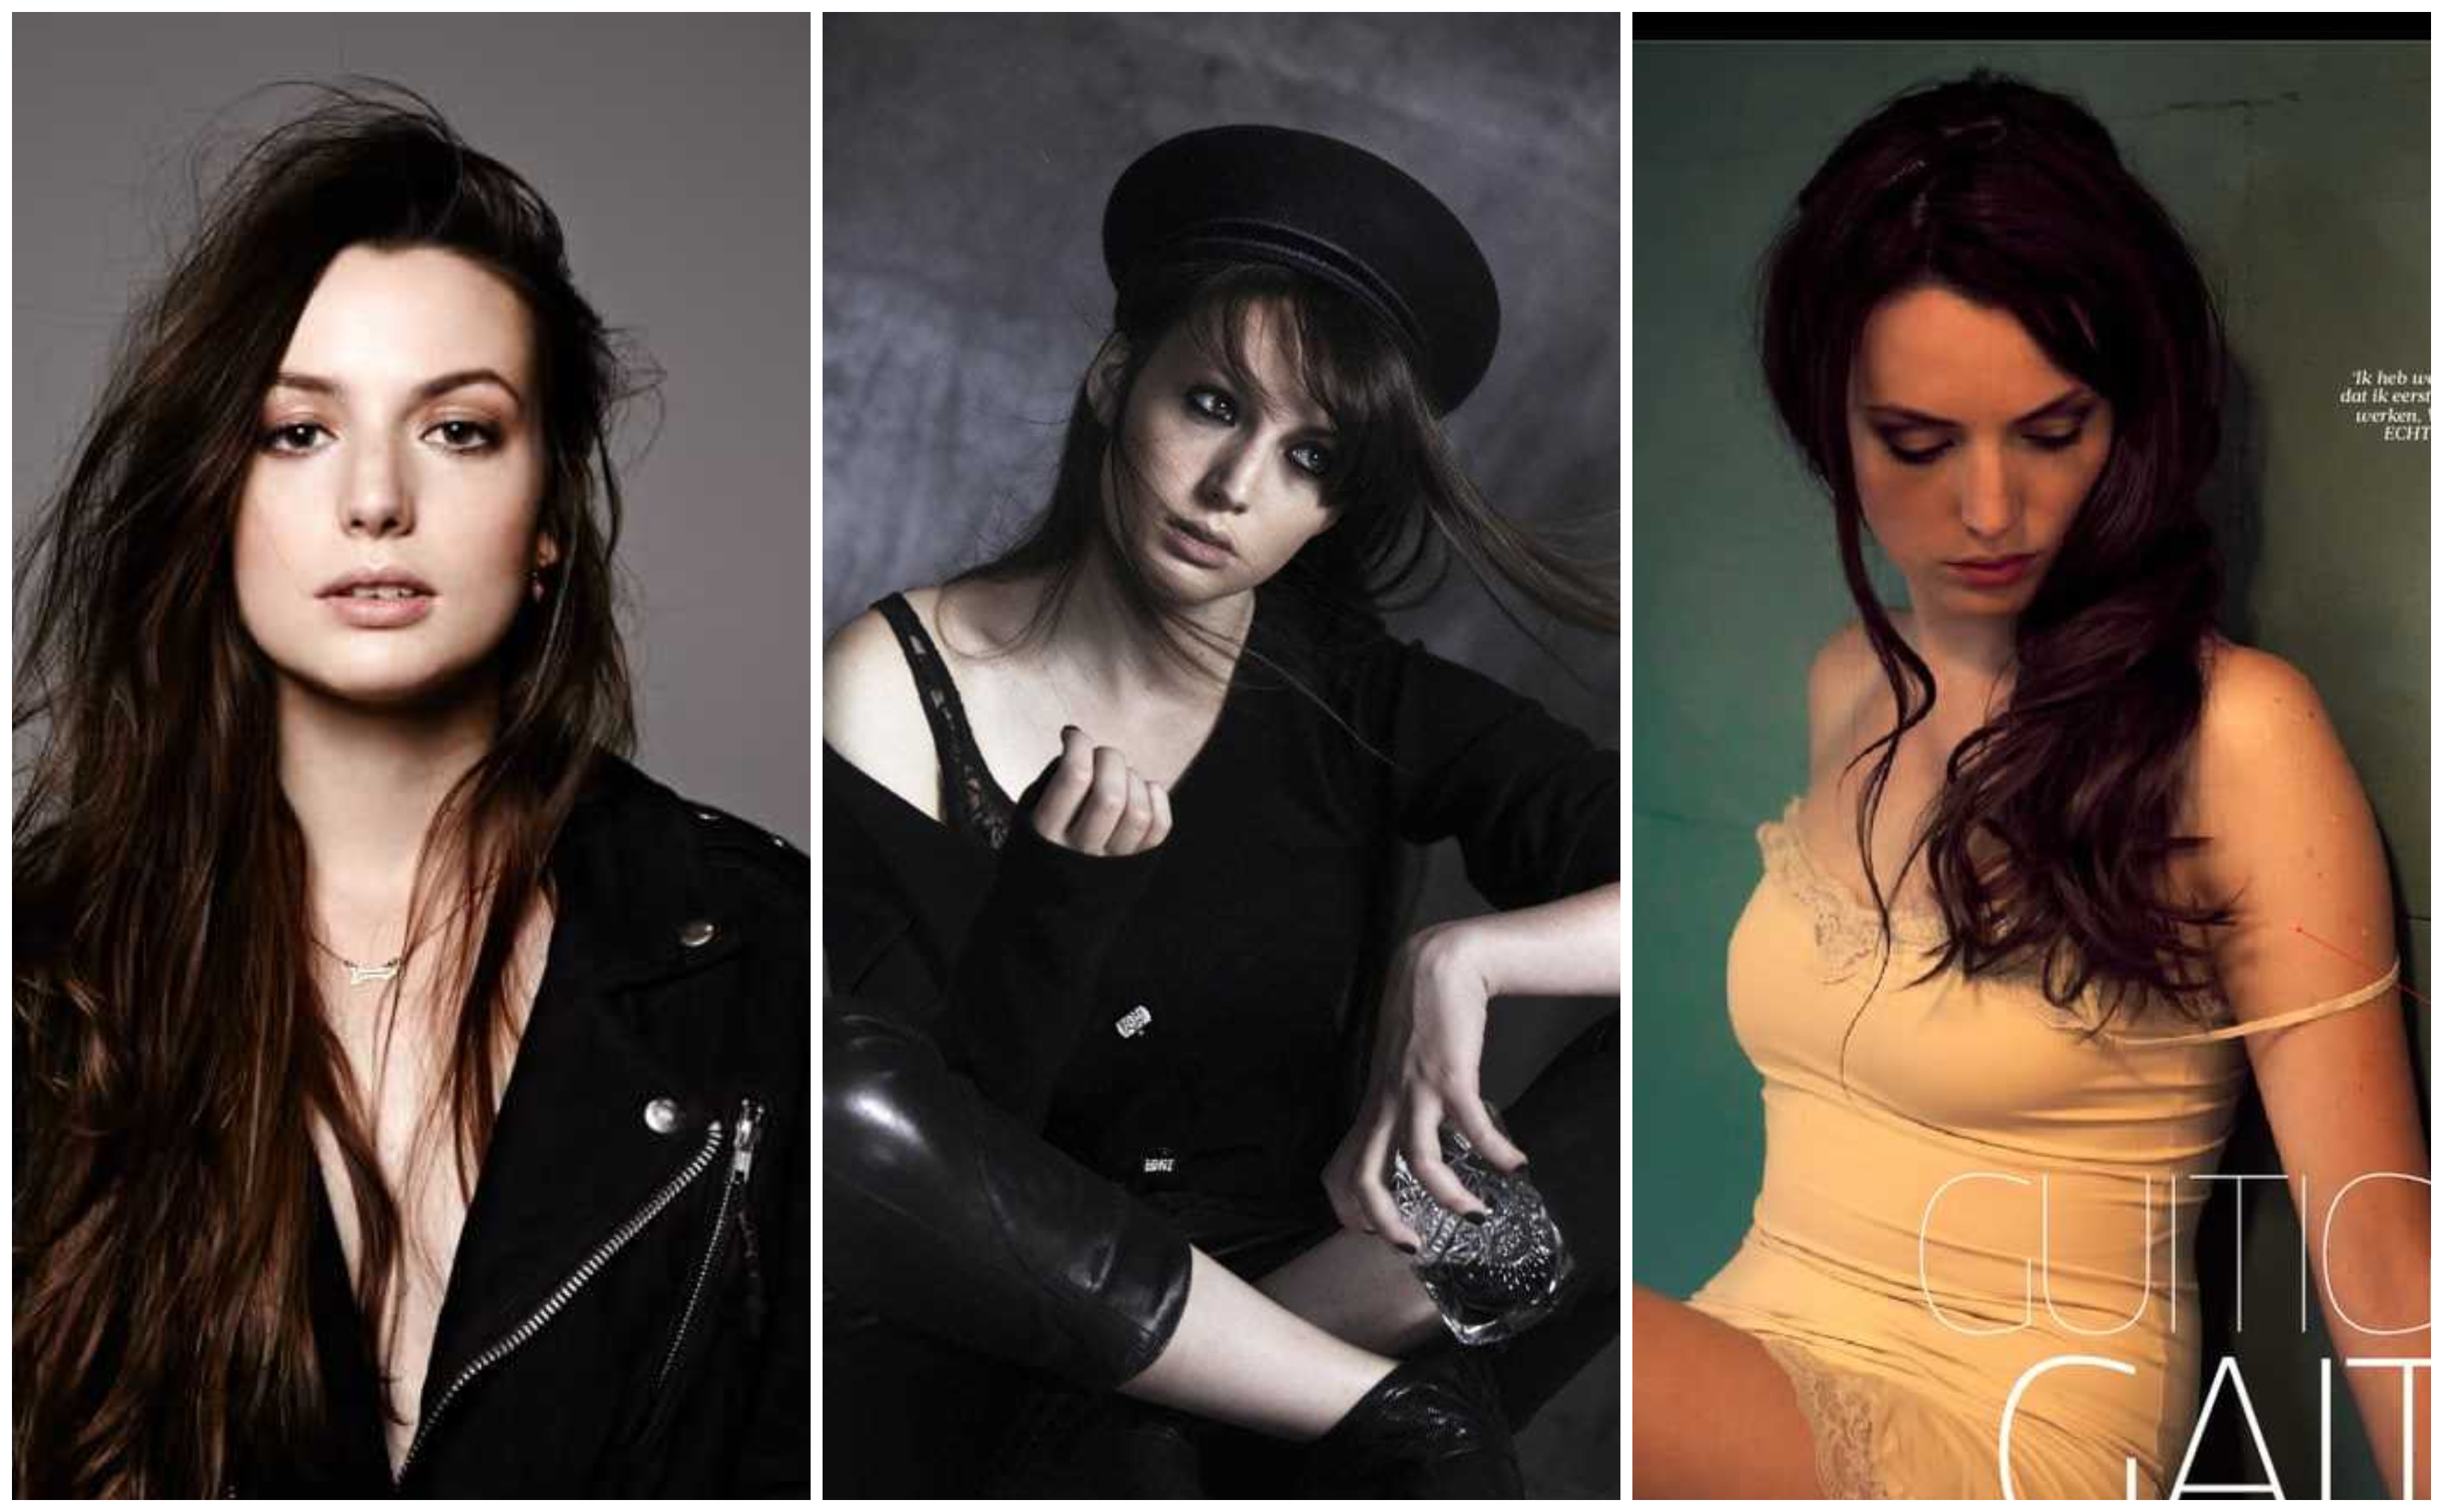 61 Sexy Gaite Jansen Pictures Exhibit Her As A Skilled Performer